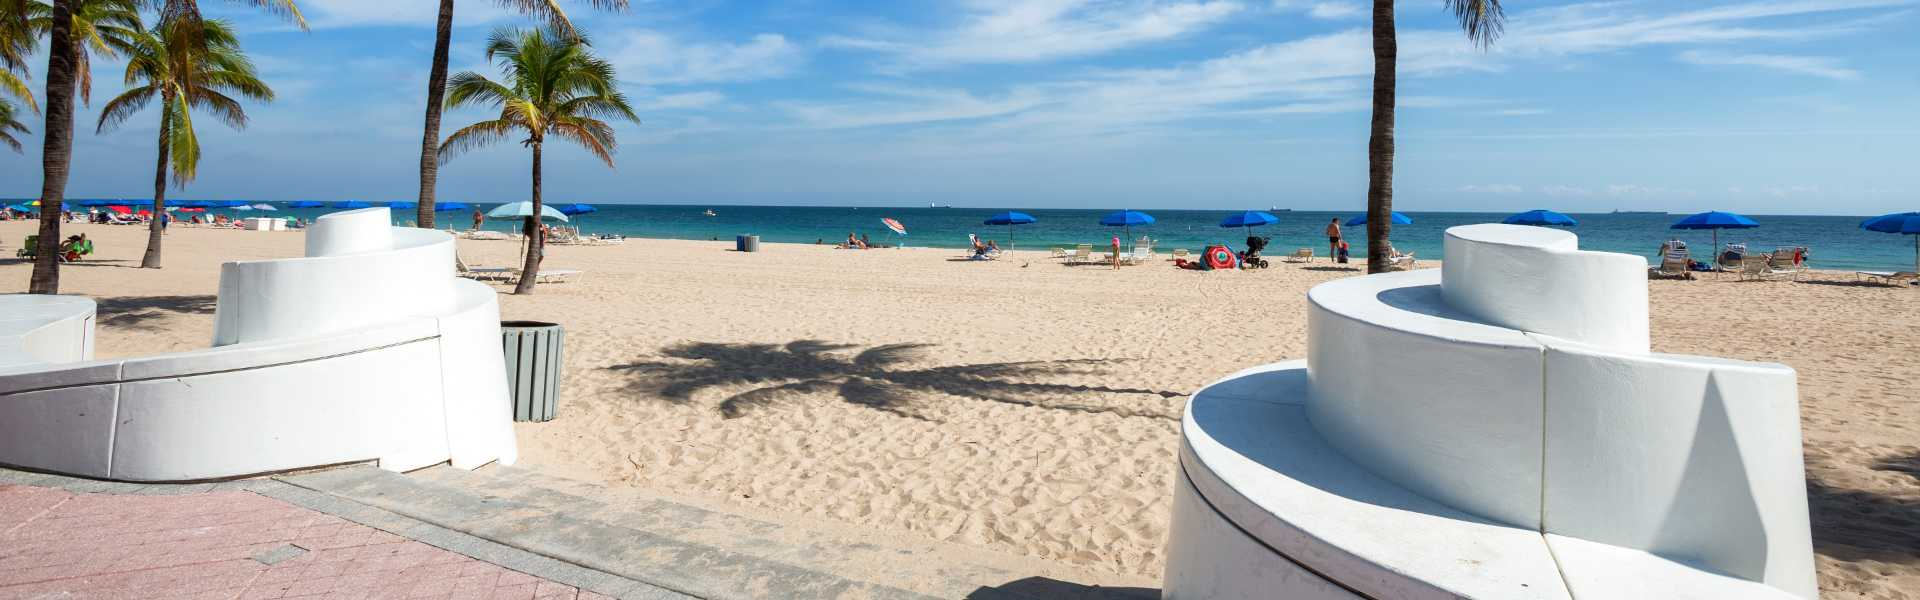 Flight Deals Orlando to Fort Lauderdale, MCO to FLL Plane Tickets